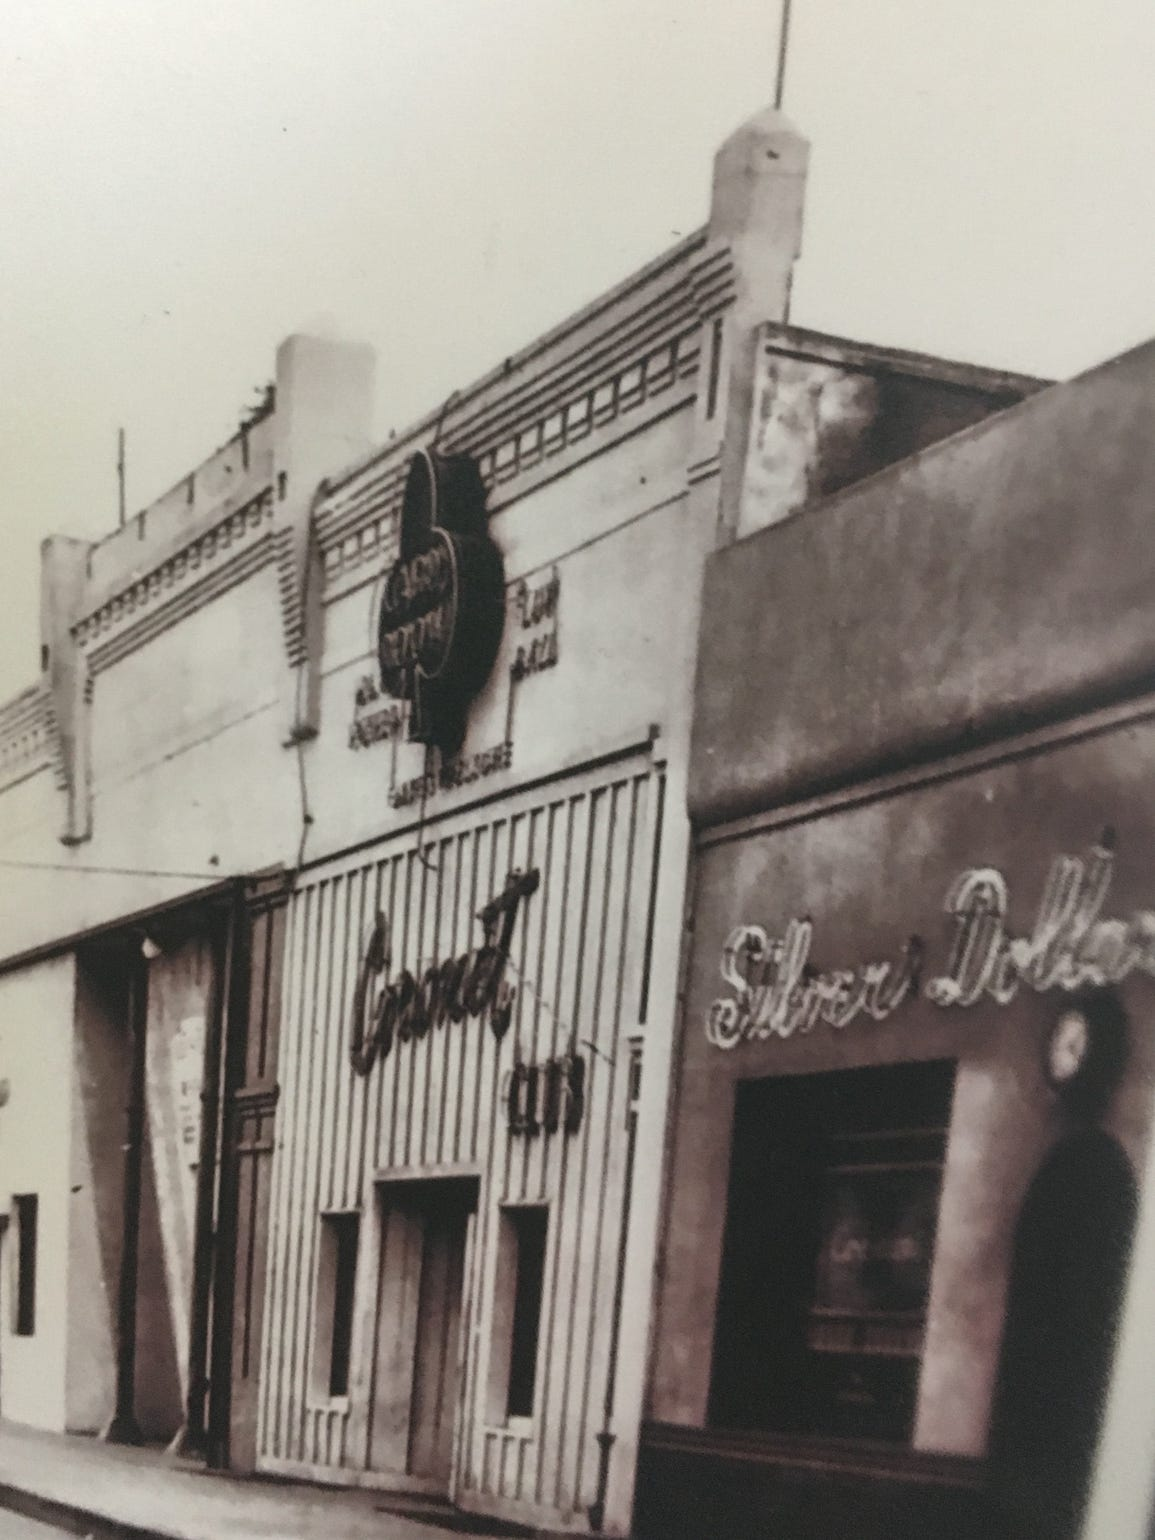 This is a historical photo of downtown Port Hueneme.